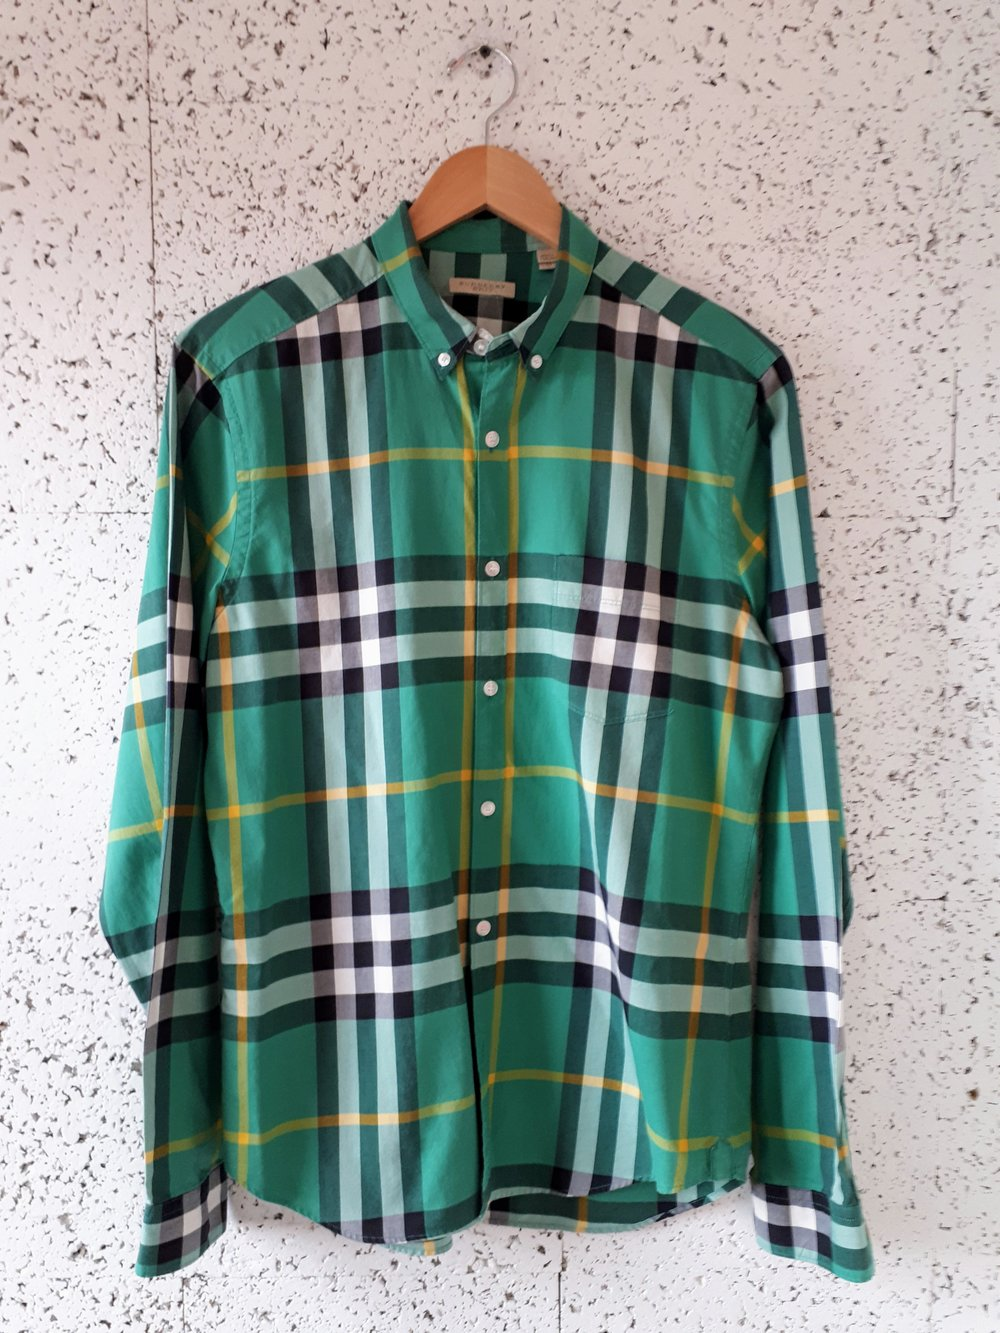 Burberry Brit shirt; Size M, $62